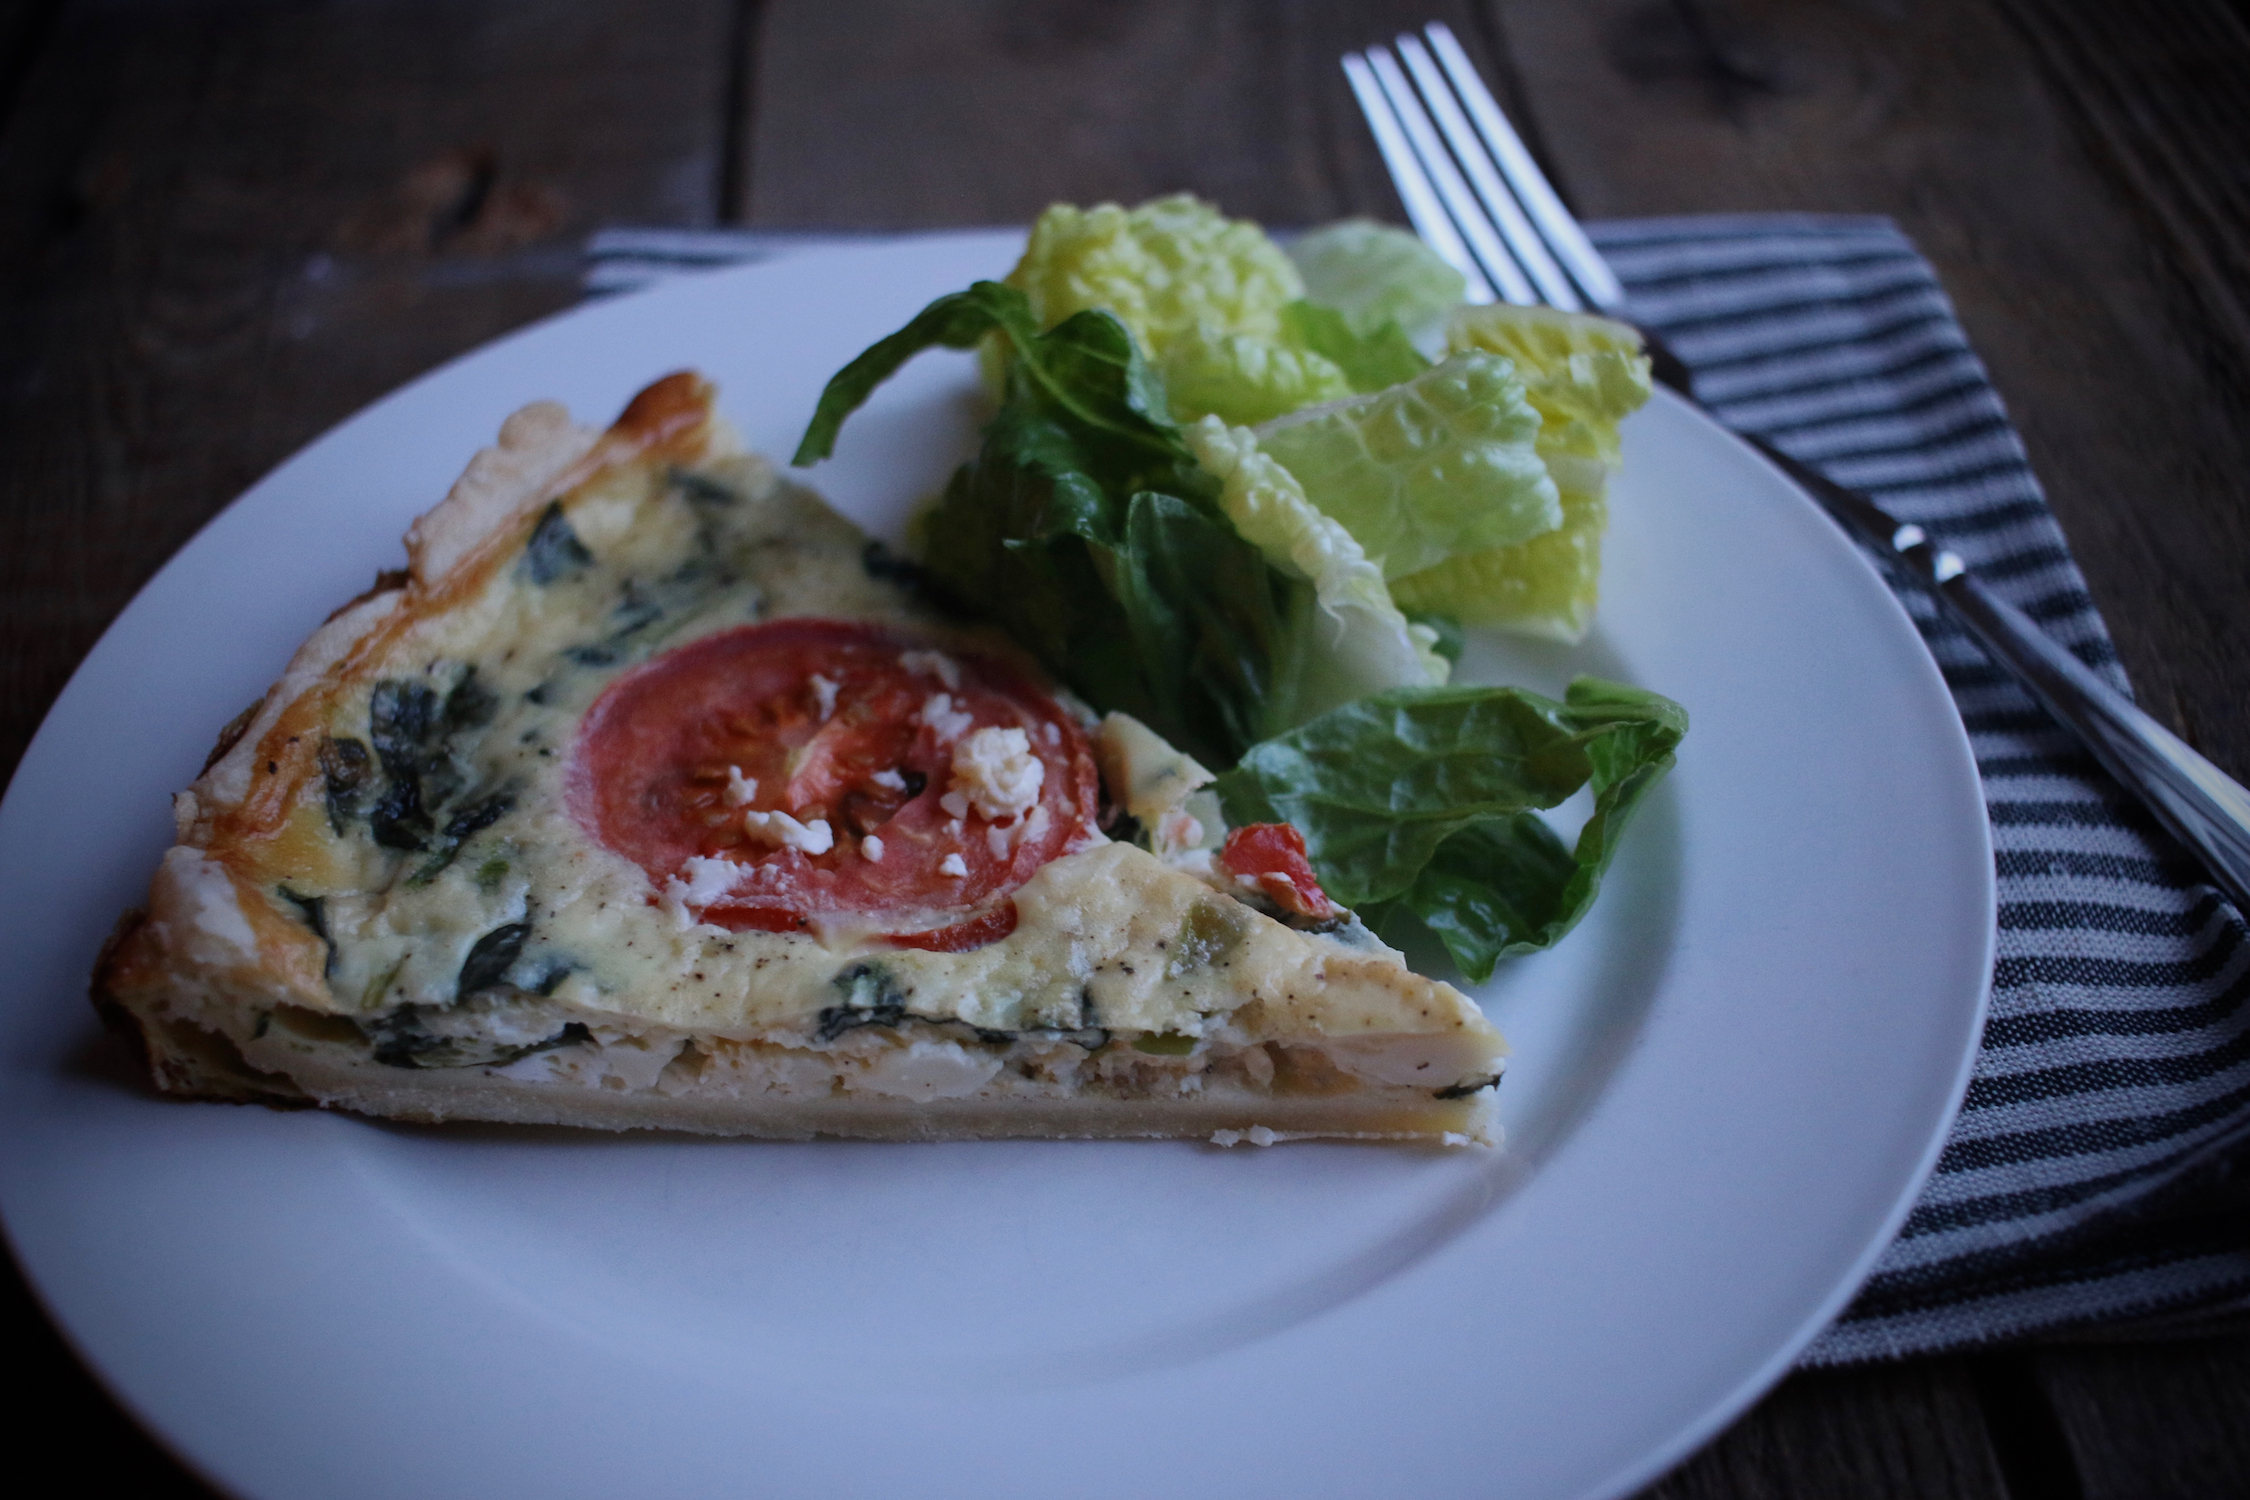 Spinach and Feta Cheese Quiche with Salad | Linden & Lavender